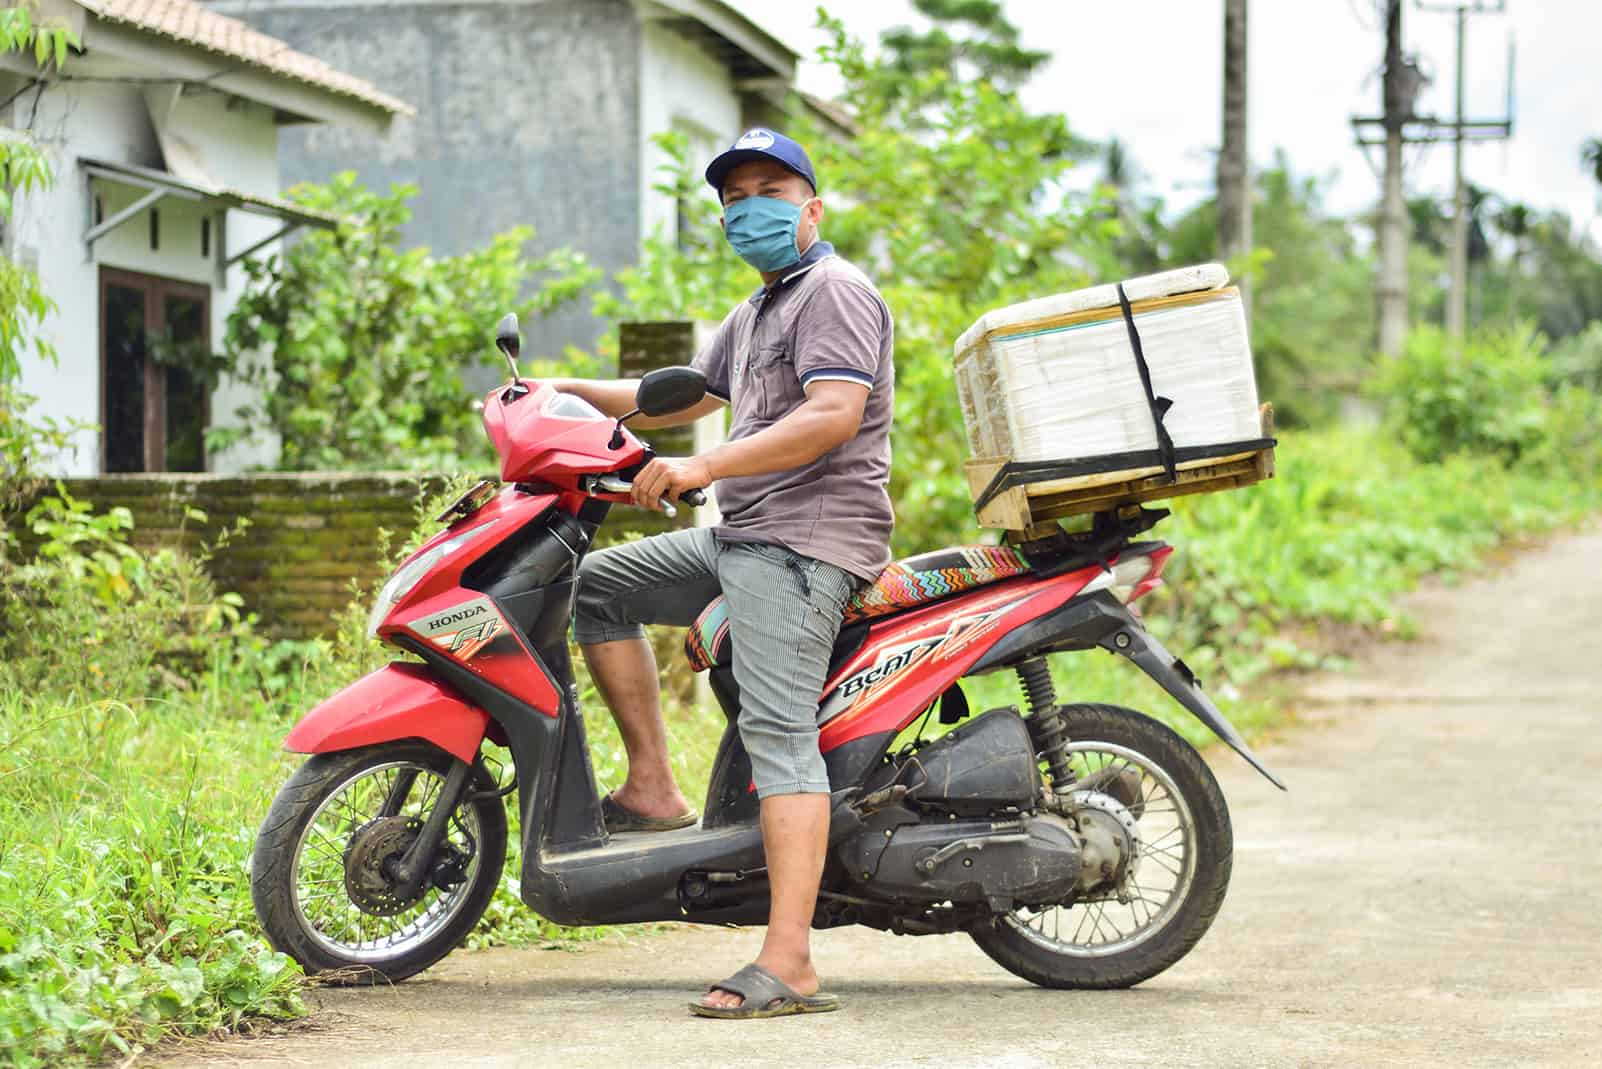 Julius is wearing a gray shirt and green pants, along with a blue face mask. He is sitting on a motorbike that he drives around his community to sell fish. His fish cooler is on the back of his bike.